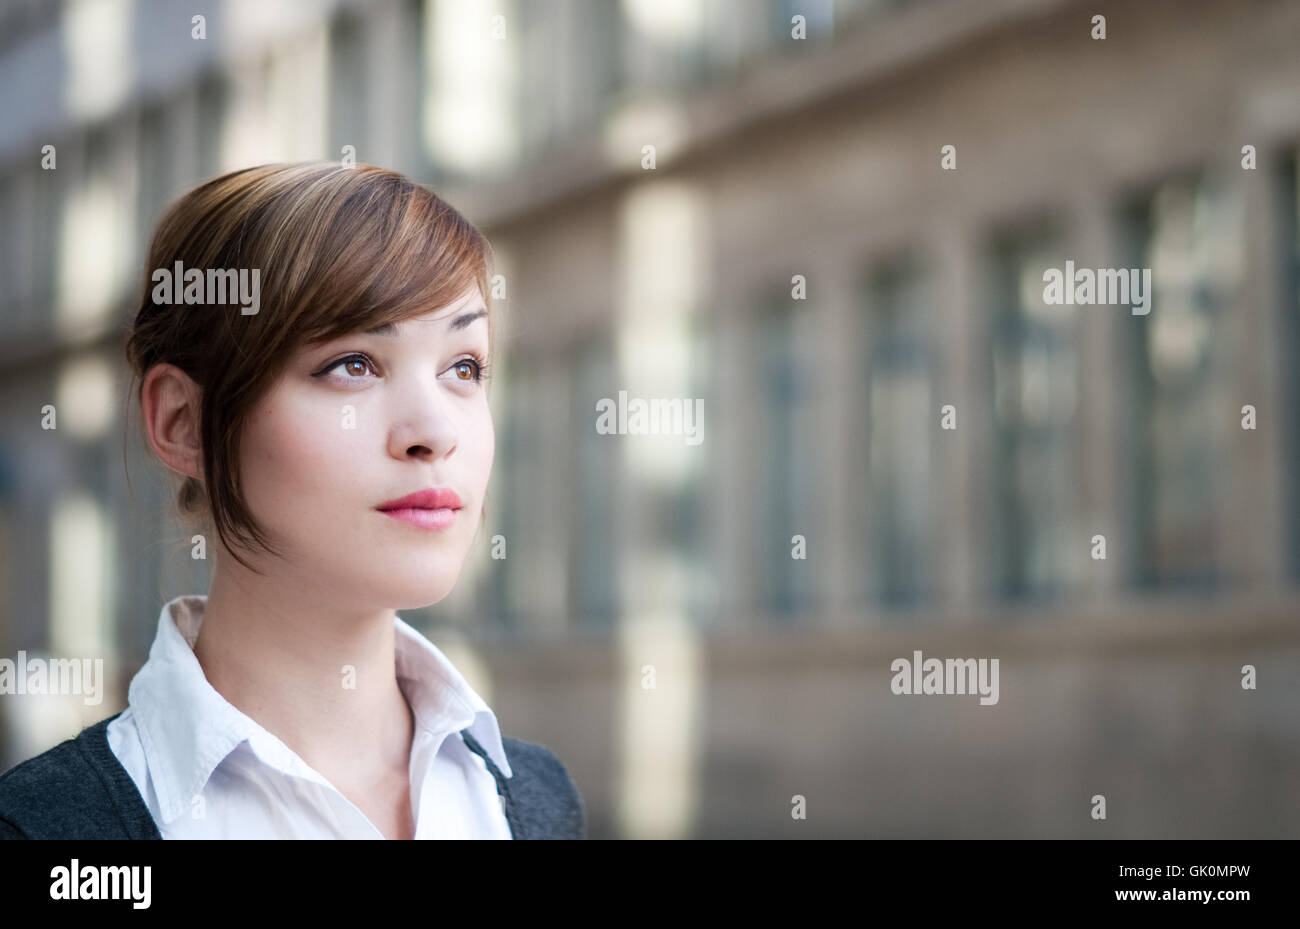 businesswoman looks into the future - Stock Image